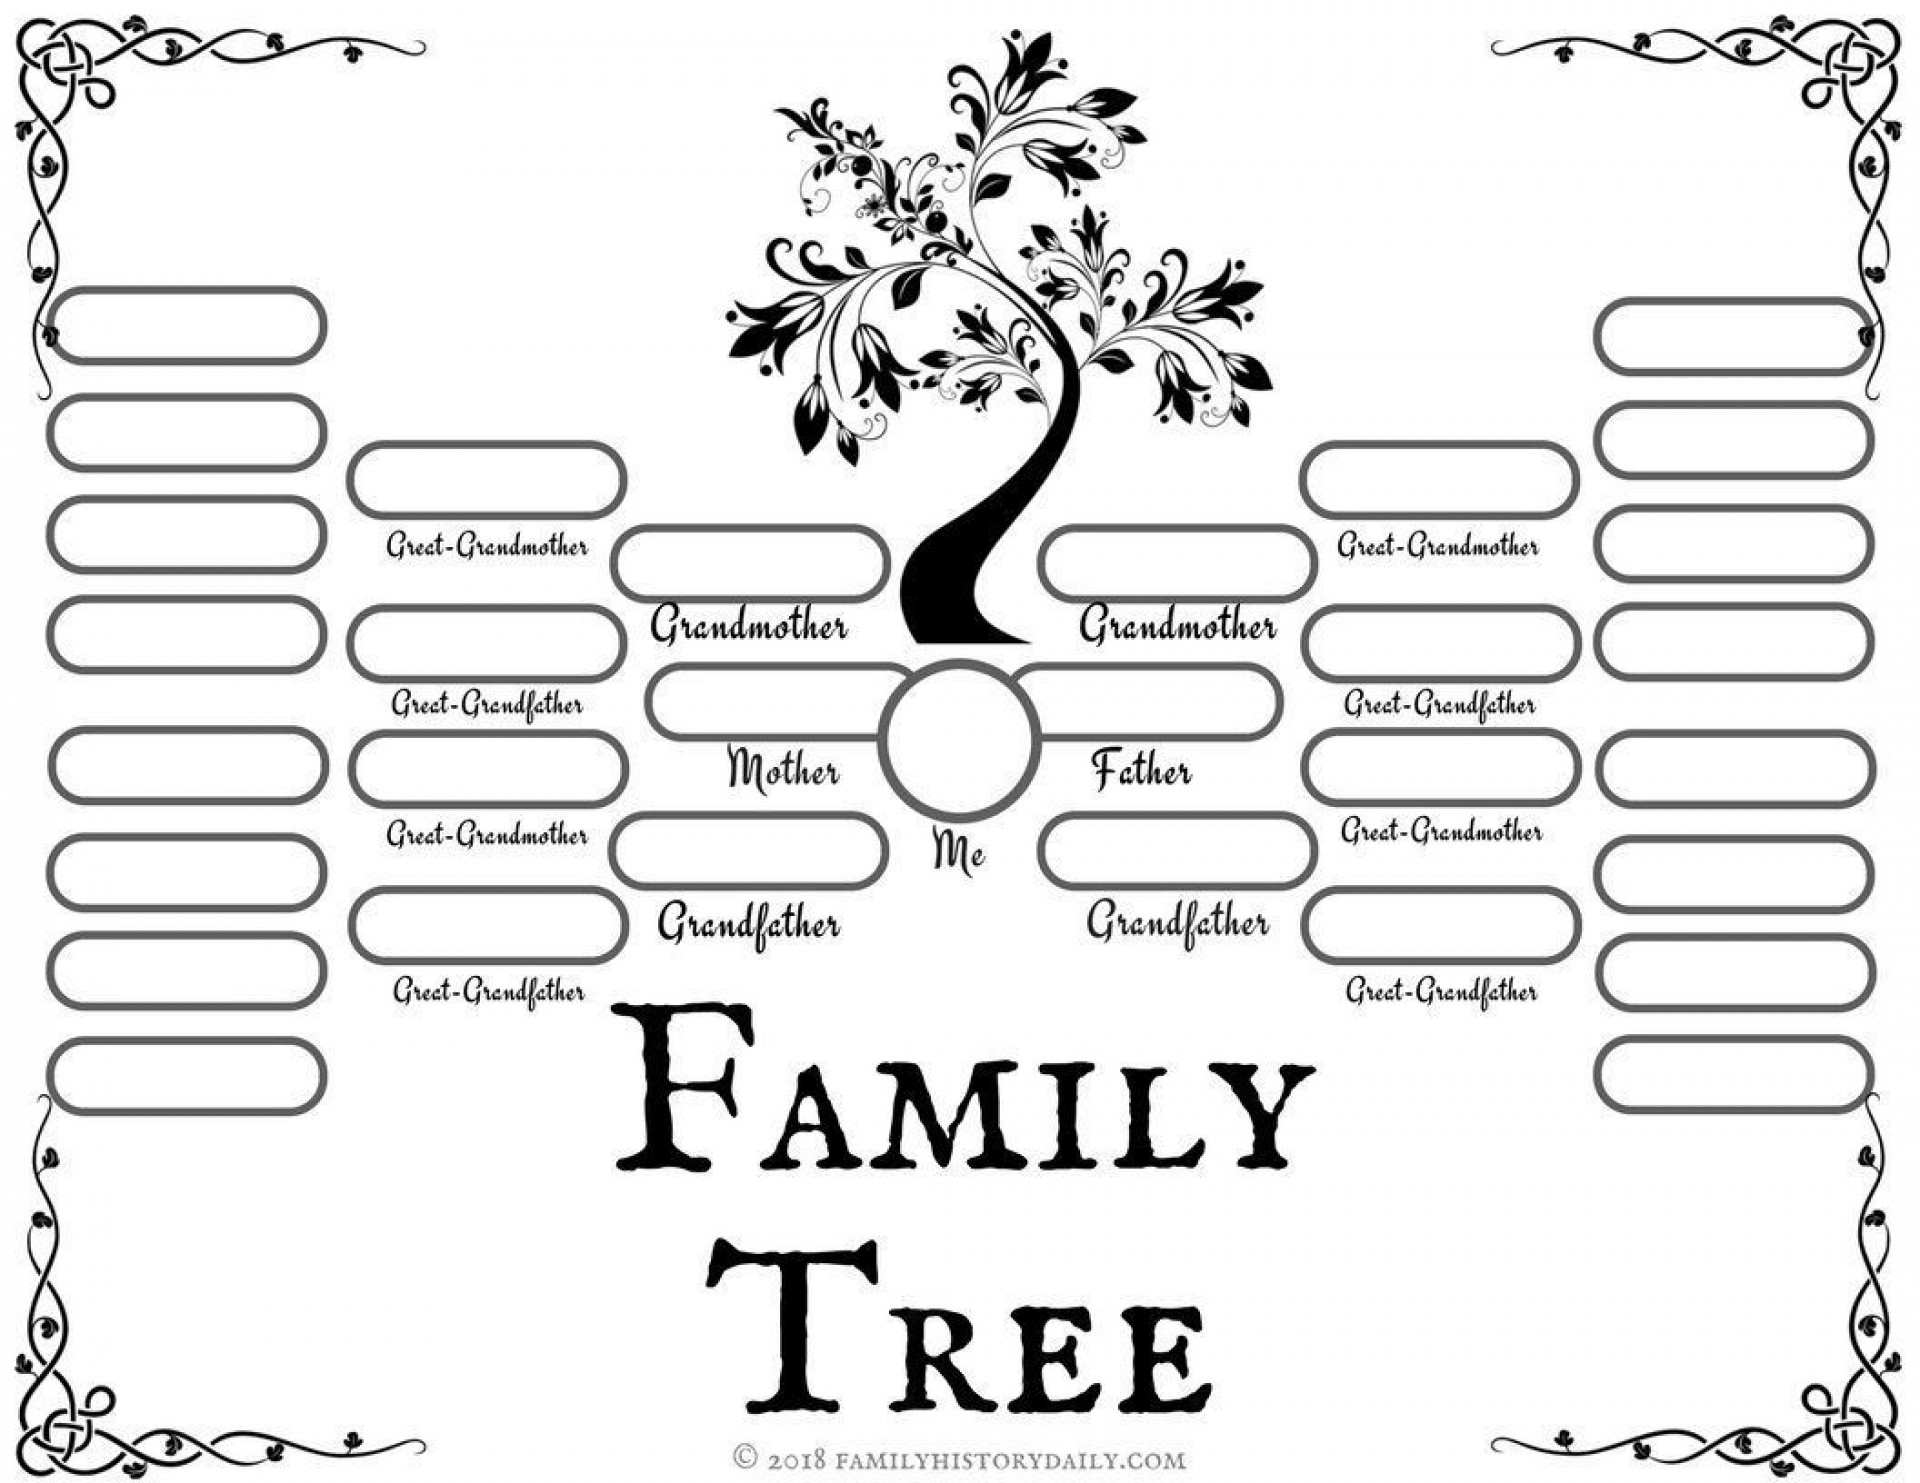 001 Stunning Free Editable Family Tree Template Picture  With Sibling Powerpoint For Mac1920